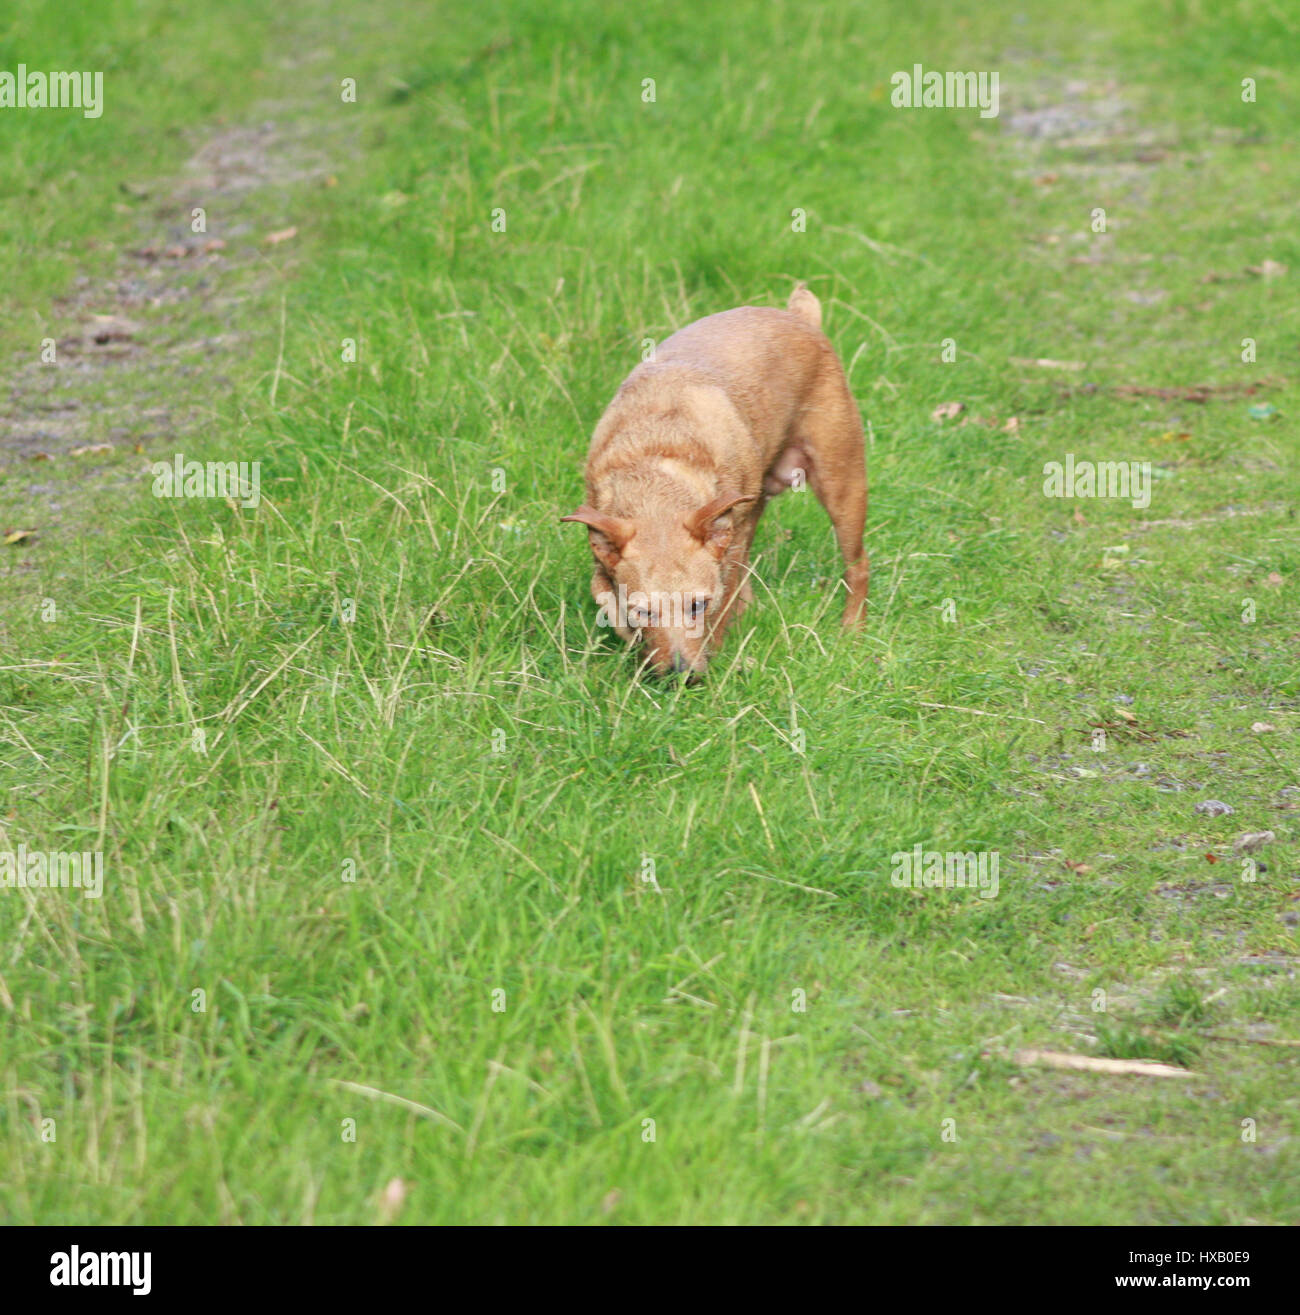 Isolated small brown terrier dog sniffing the grass - Stock Image